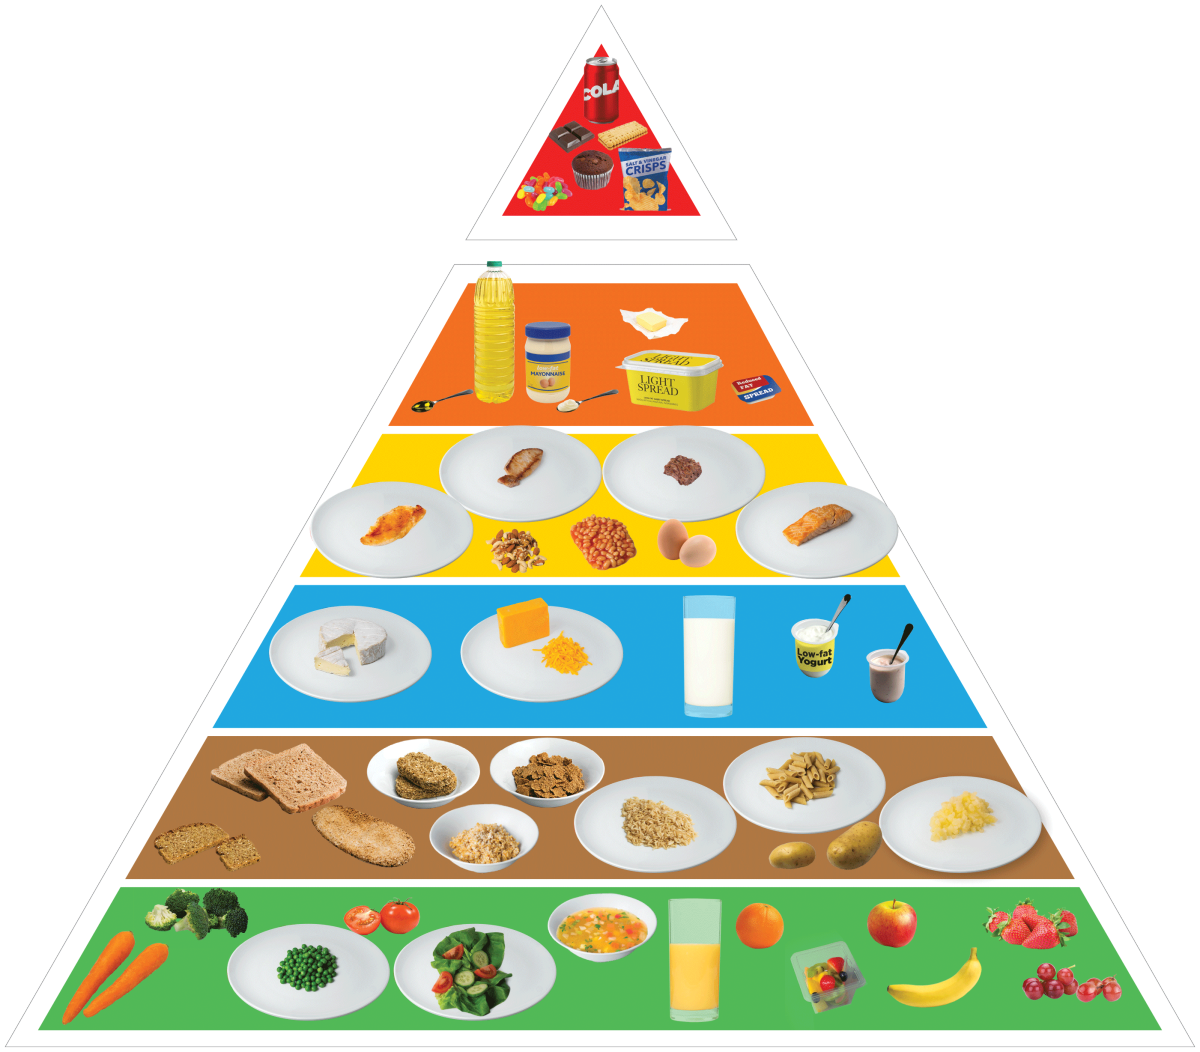 Food pyramid png. White bread taken off